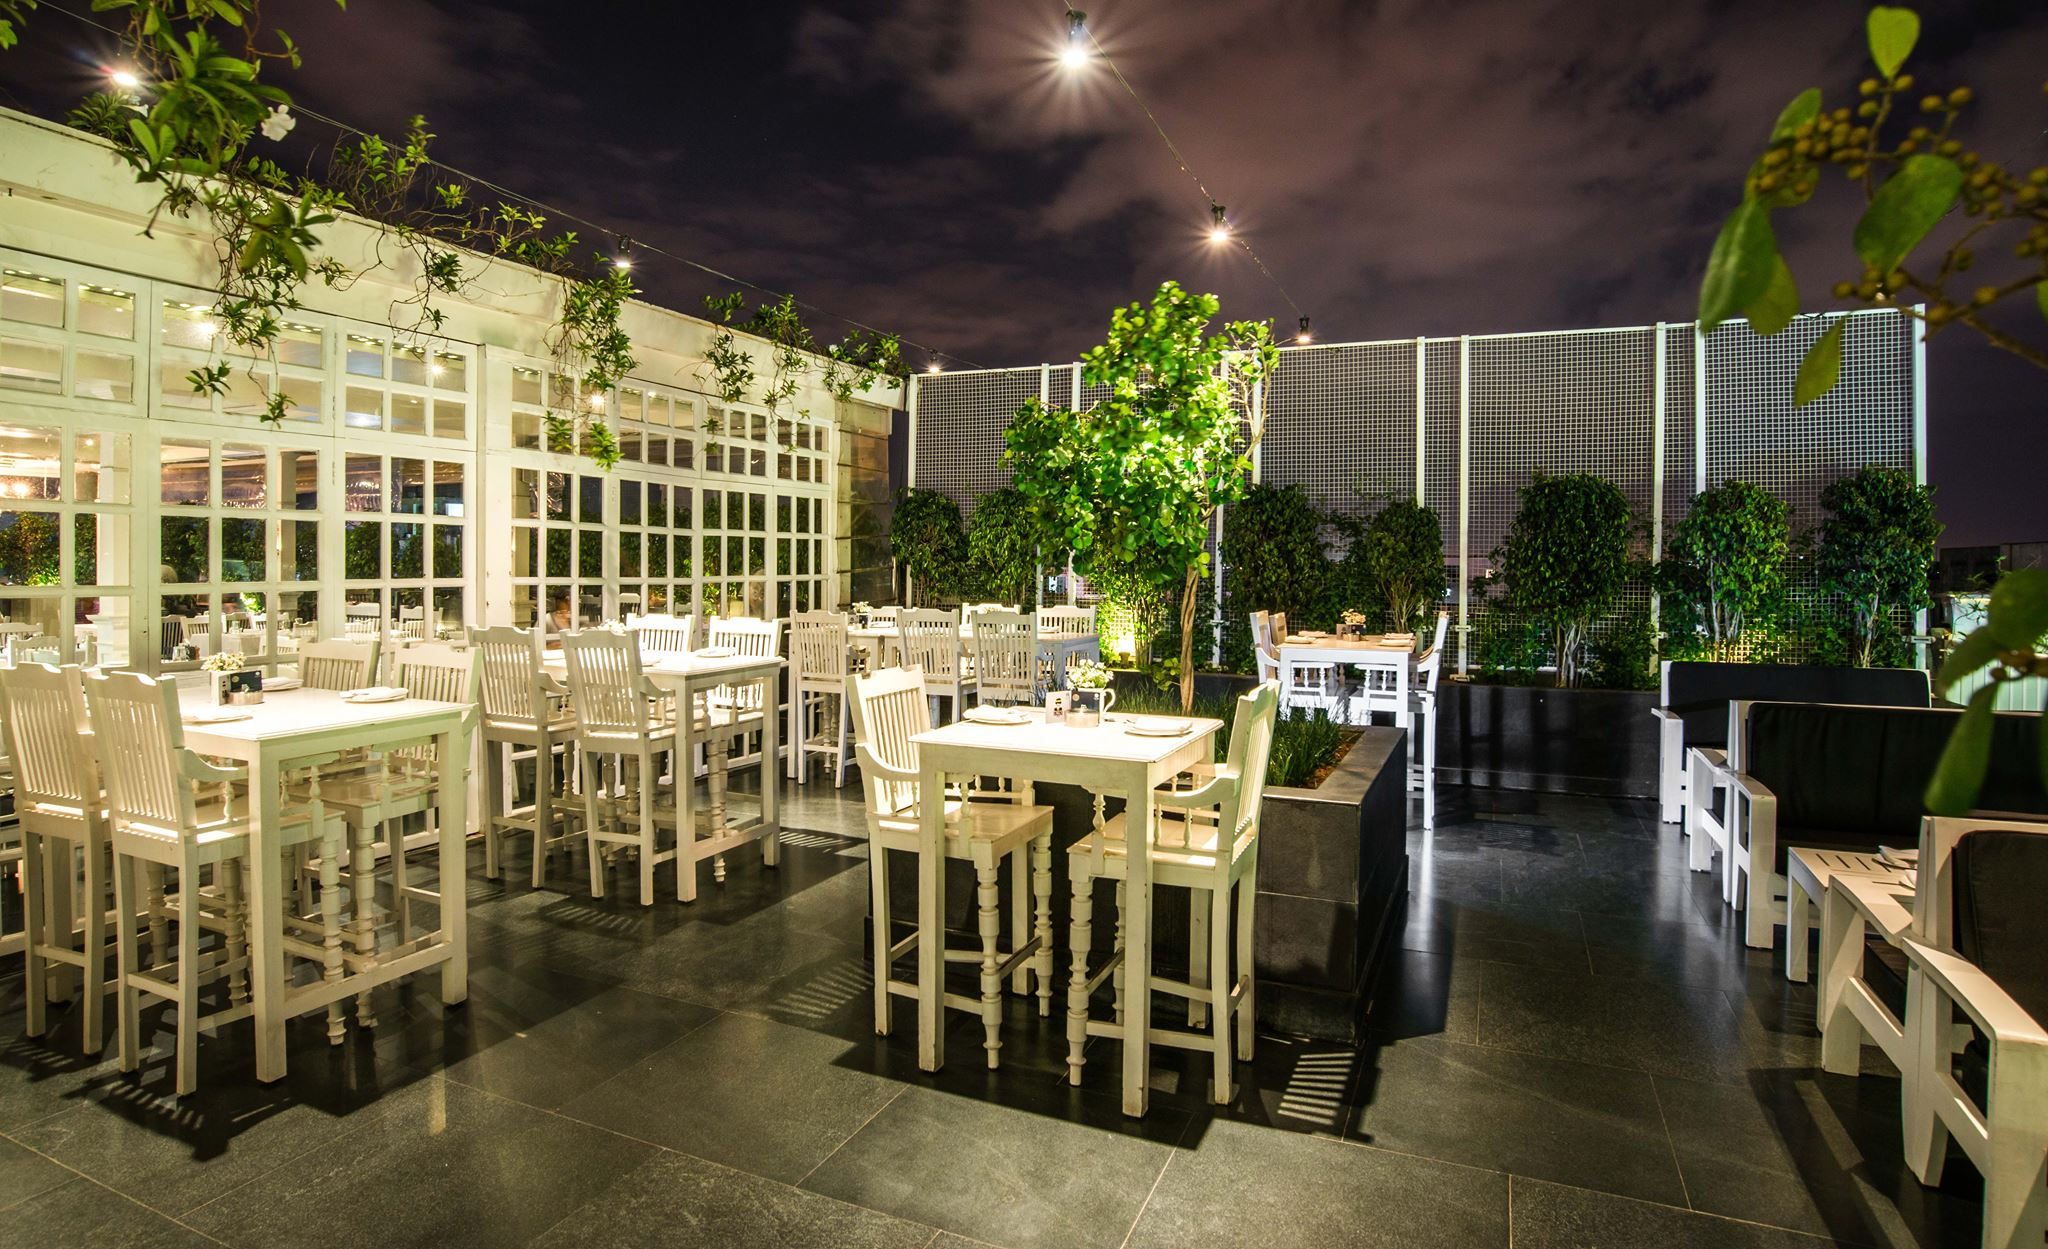 The 10 Best Rooftop Restaurants In Bangalore,Parmesan Crusted Chicken Pasta Recipe